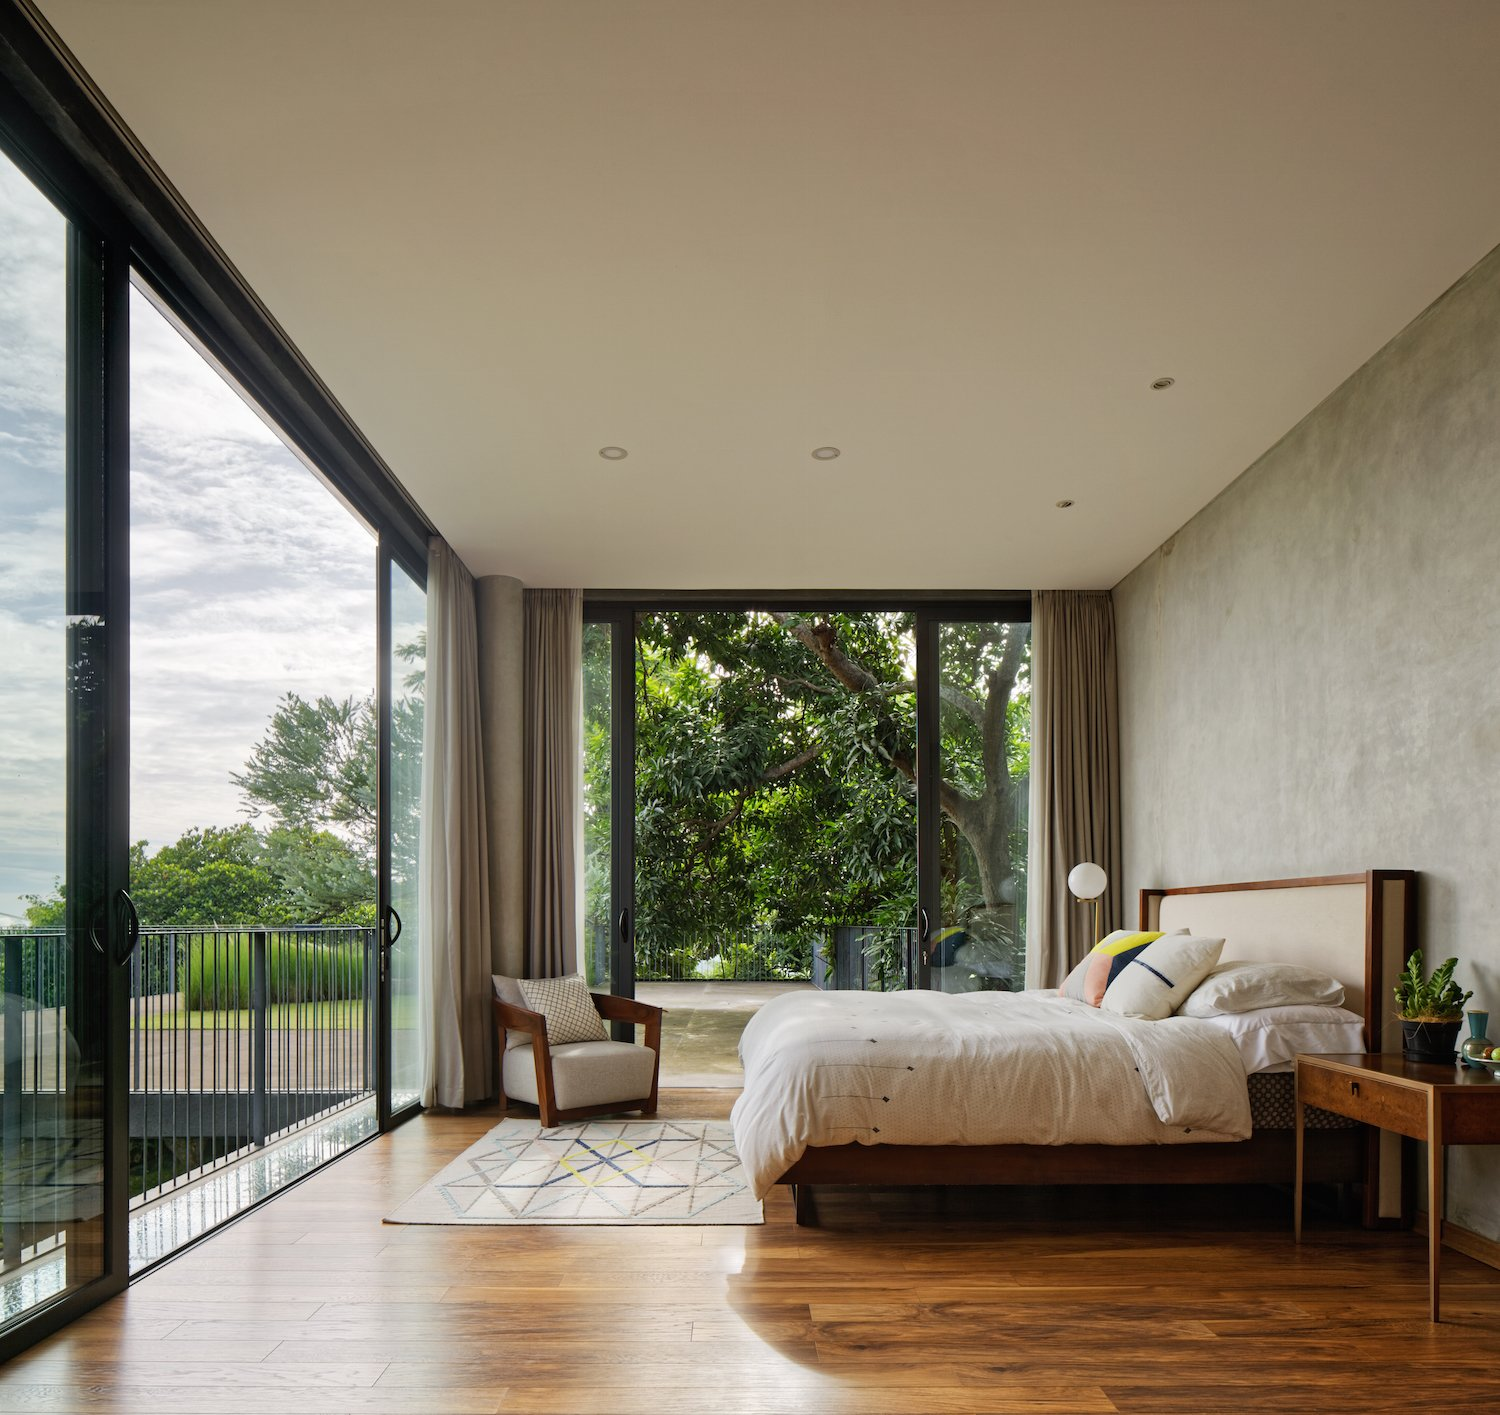 Bedroom, Bed, Chair, Recessed, Night Stands, Rug, Medium Hardwood, Floor, and Lamps The bedroom on the second floor has a treehouse-like feel.  Bedroom Medium Hardwood Floor Night Stands Recessed Photos from This Concrete Abode Embraces Indonesia's Tropical Climate